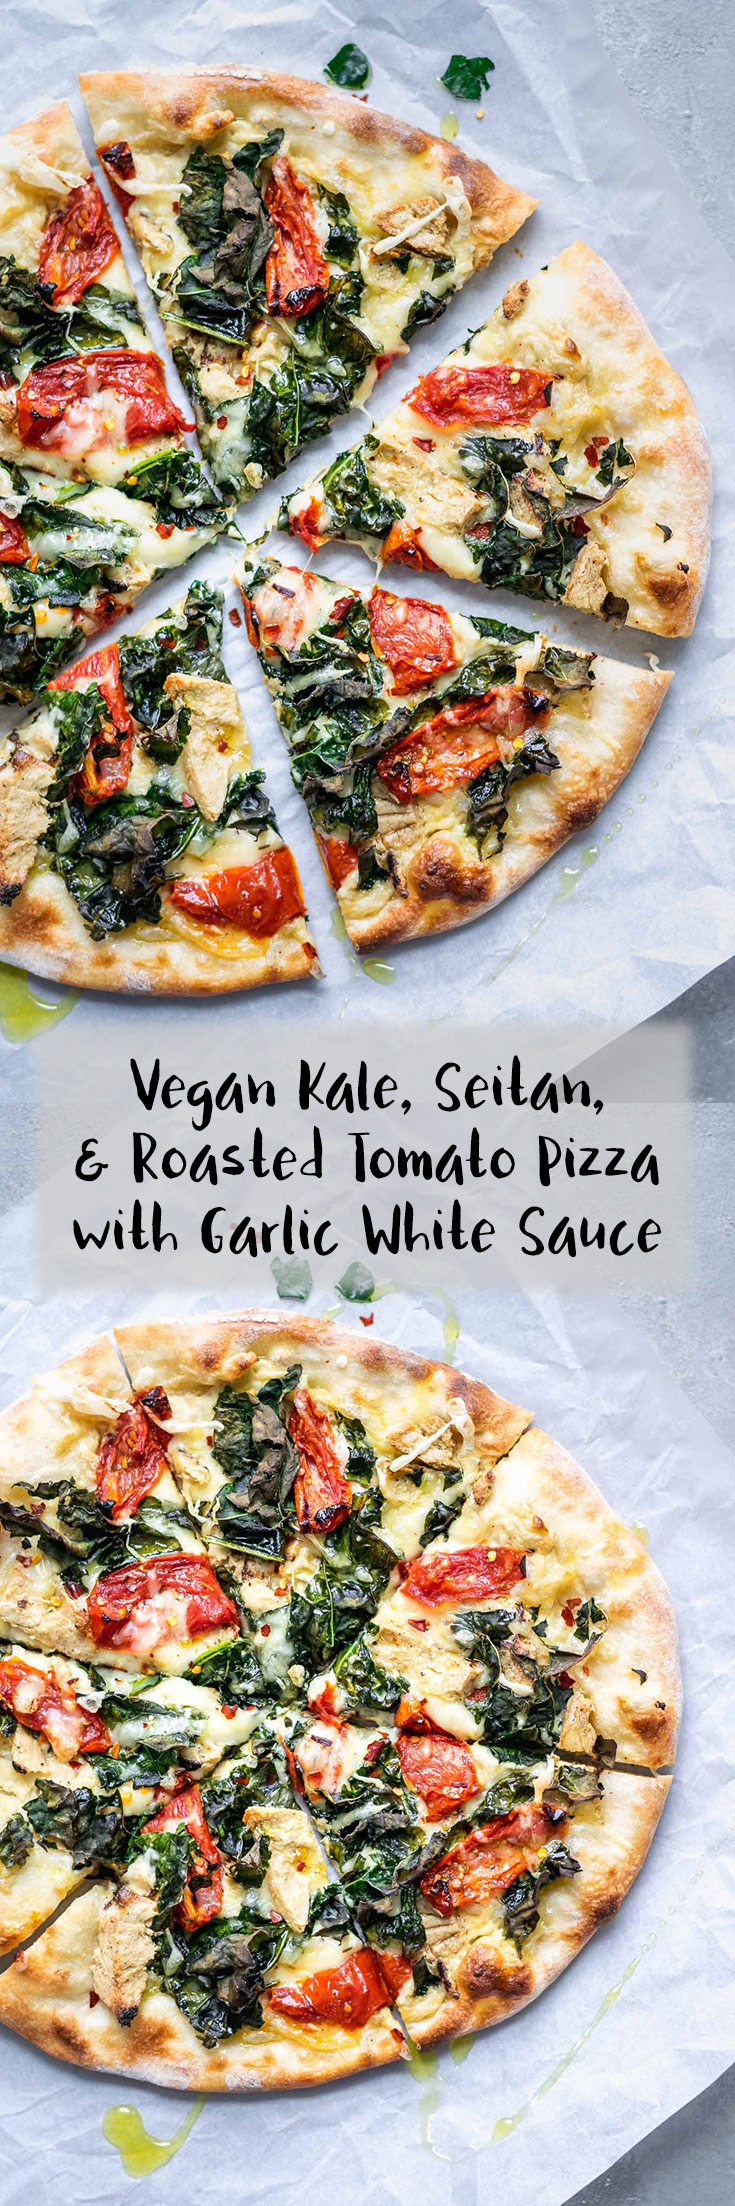 This ultra flavorful vegan pizza has a creamy garlic white sauce base, and is topped with seared seitan chicken, juicy roasted tomatoes, and torn kale which bakes up nice and crispy! | thecuriouschickpea.com #vegan #veganpizza #pizza